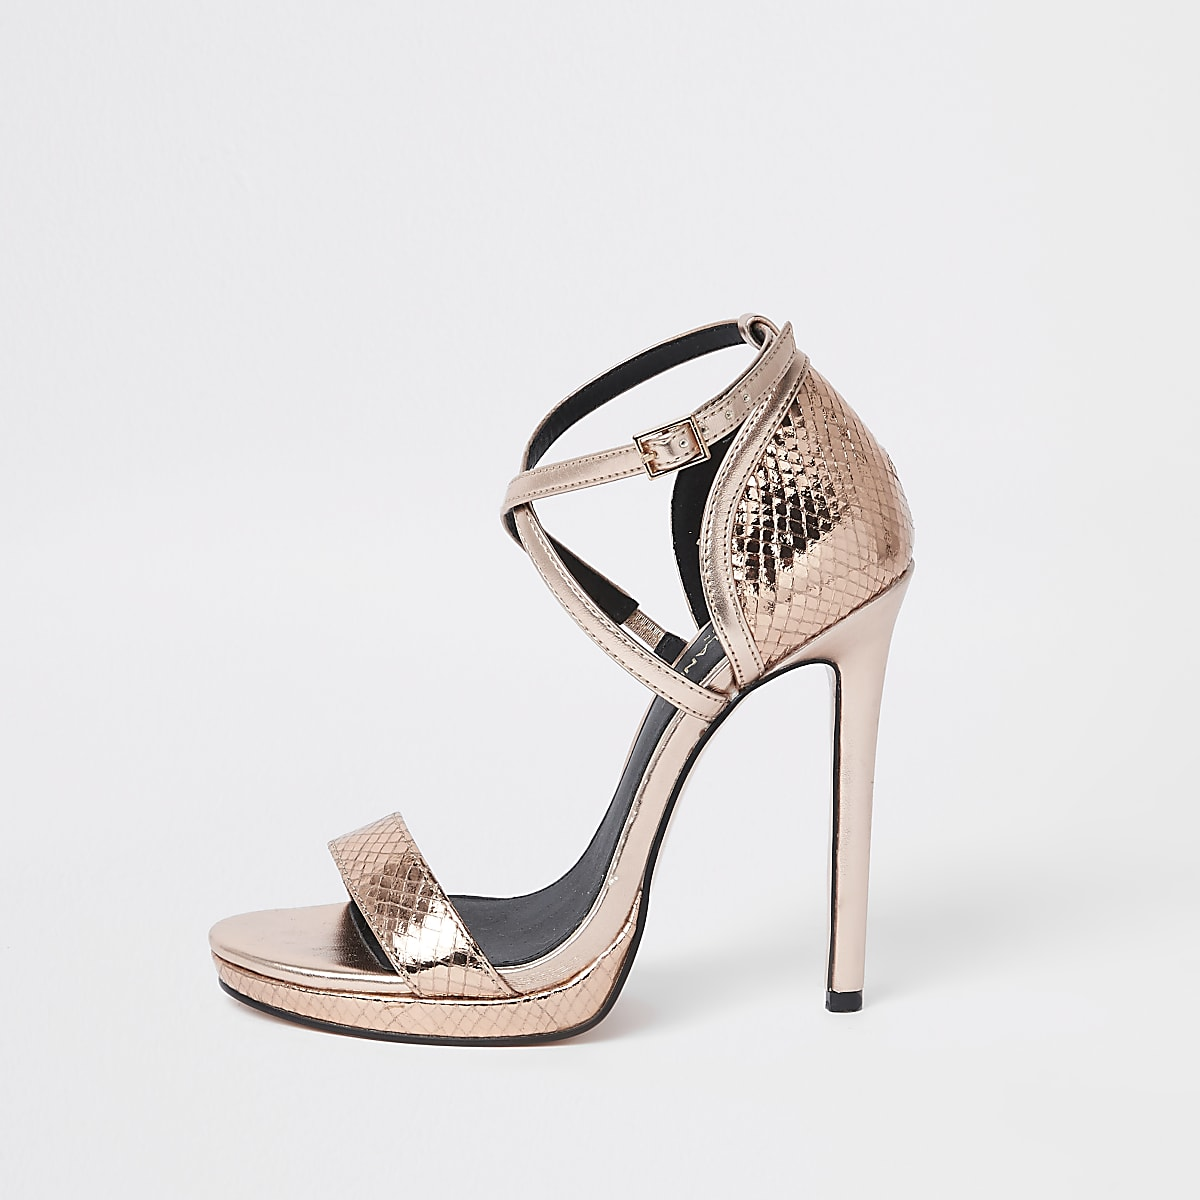 6ad57d2e3ccc Rose gold barely there platform sandals - Sandals - Shoes   Boots - women